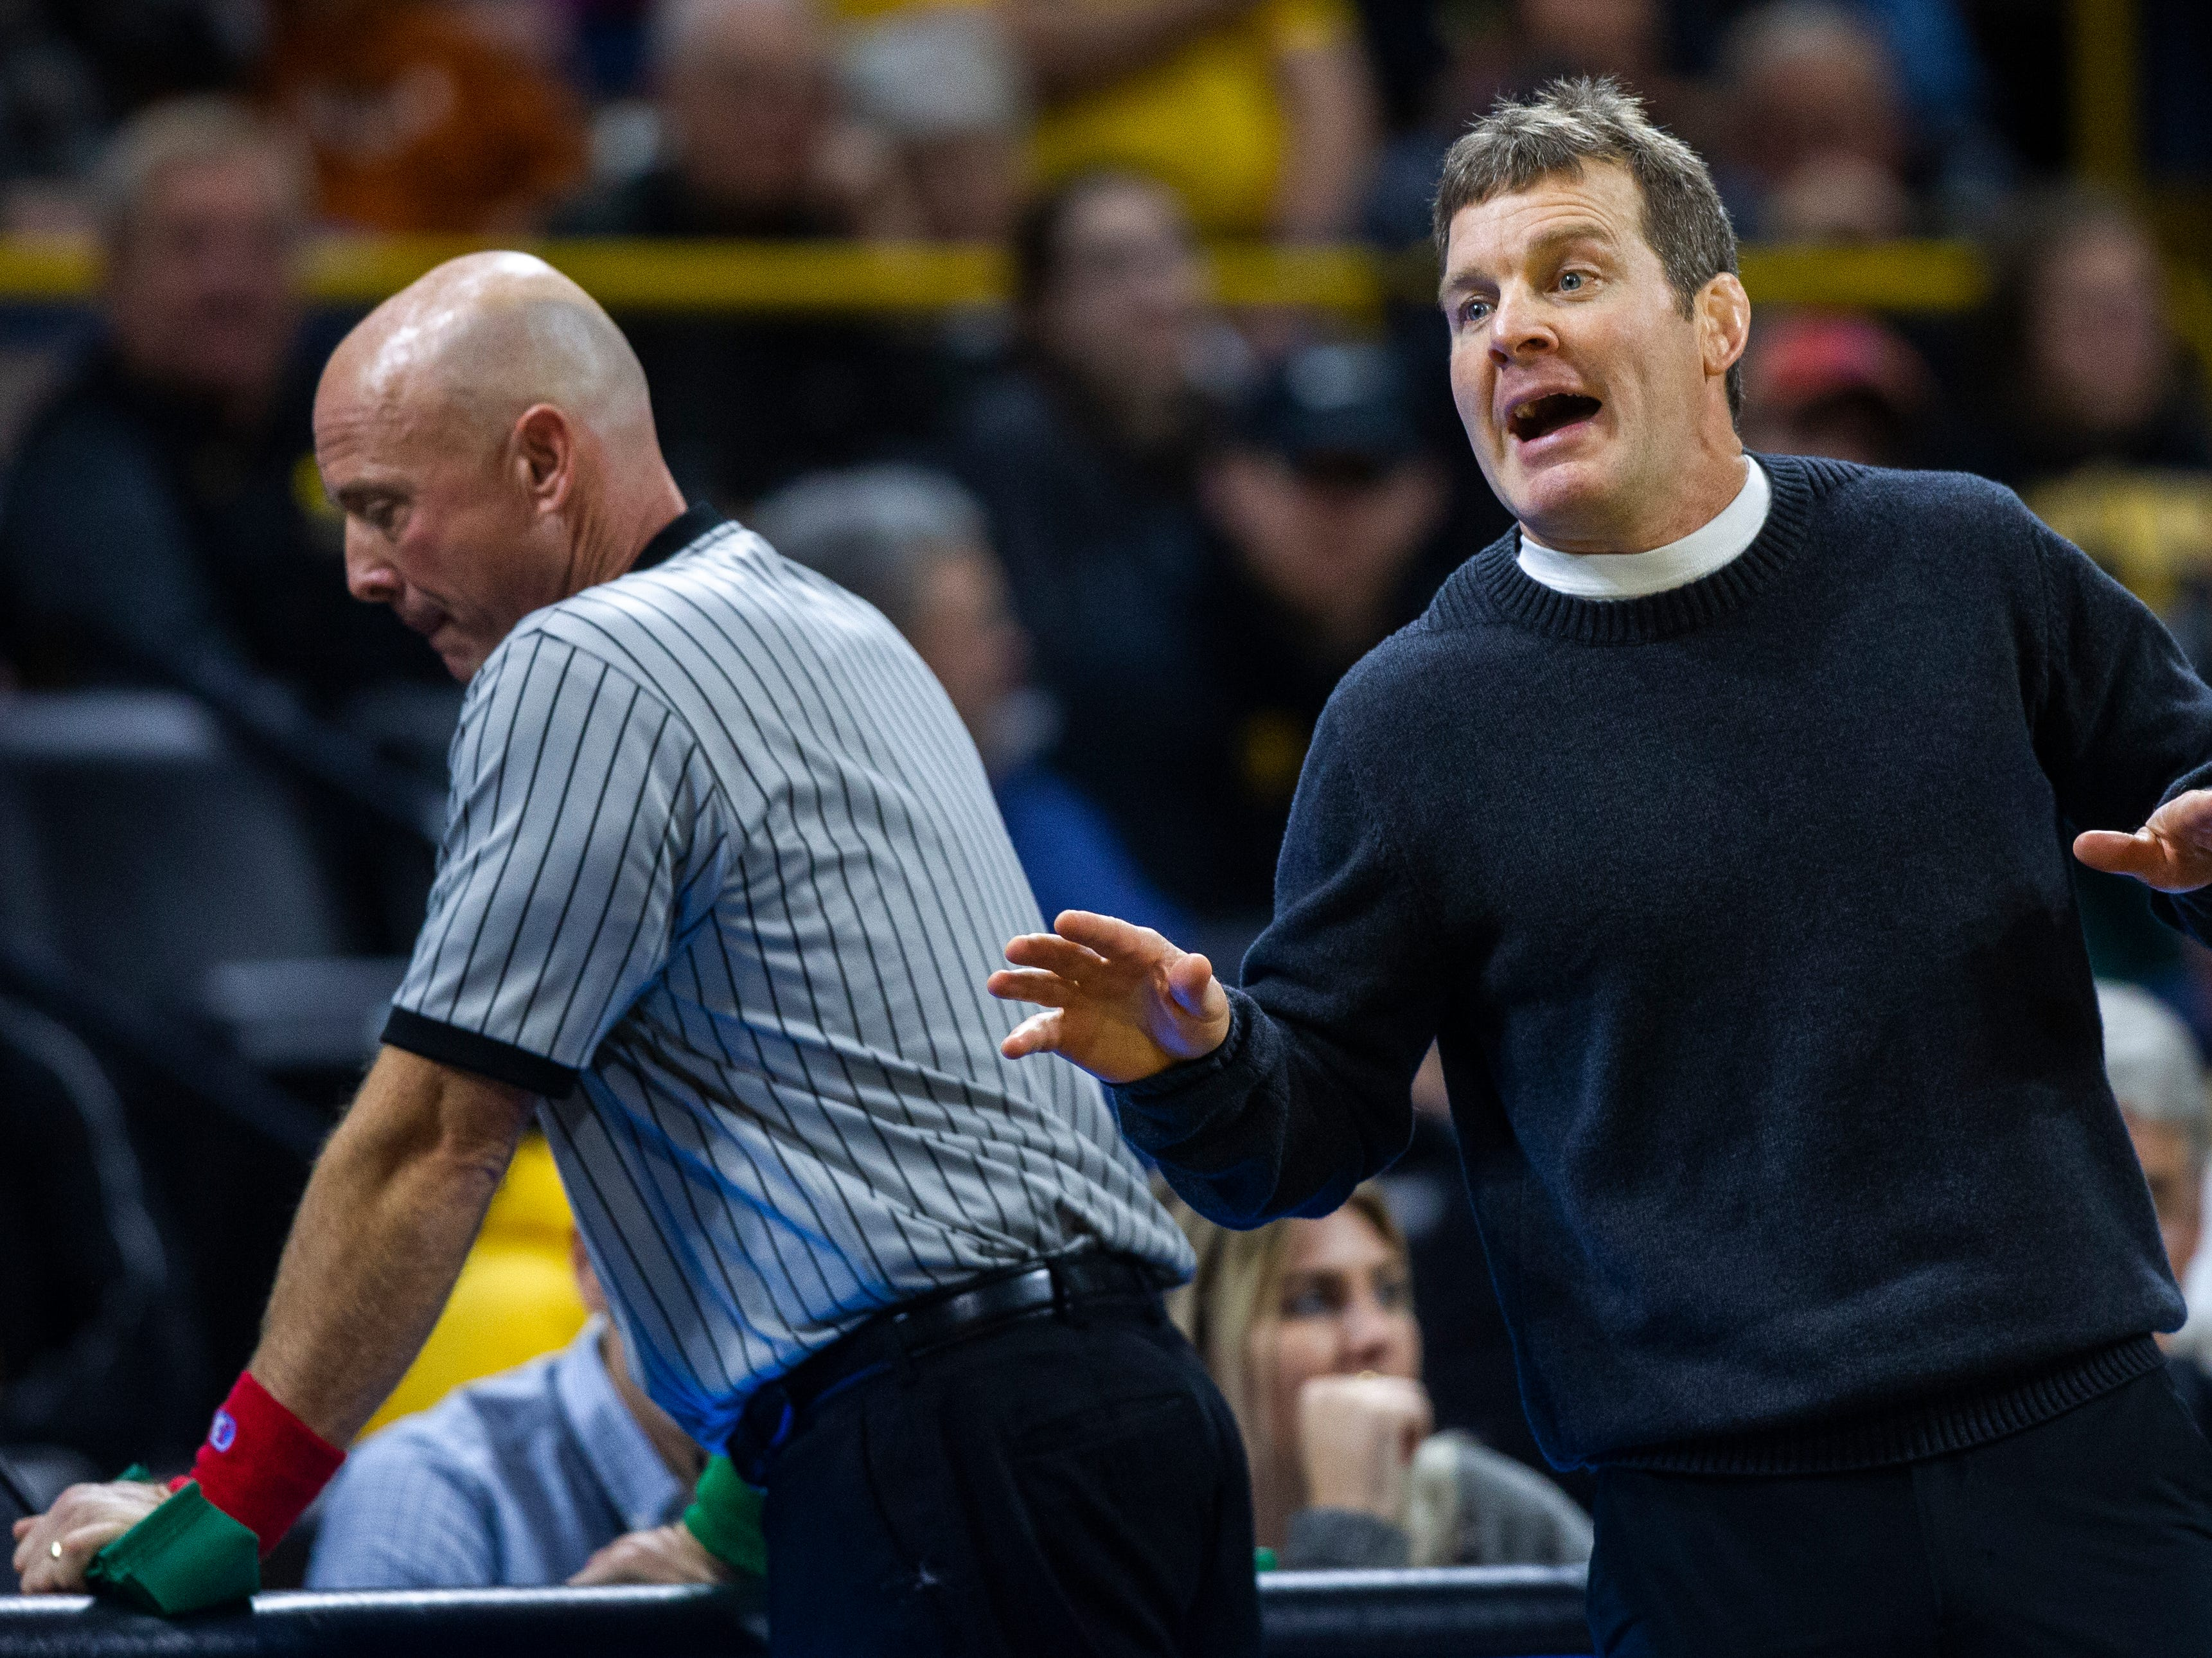 Iowa head coach Tom Brands calls out to an official while calling a challenge during an NCAA wrestle dual on Friday, Nov. 16, 2018, at Carver-Hawkeye Arena in Iowa City.